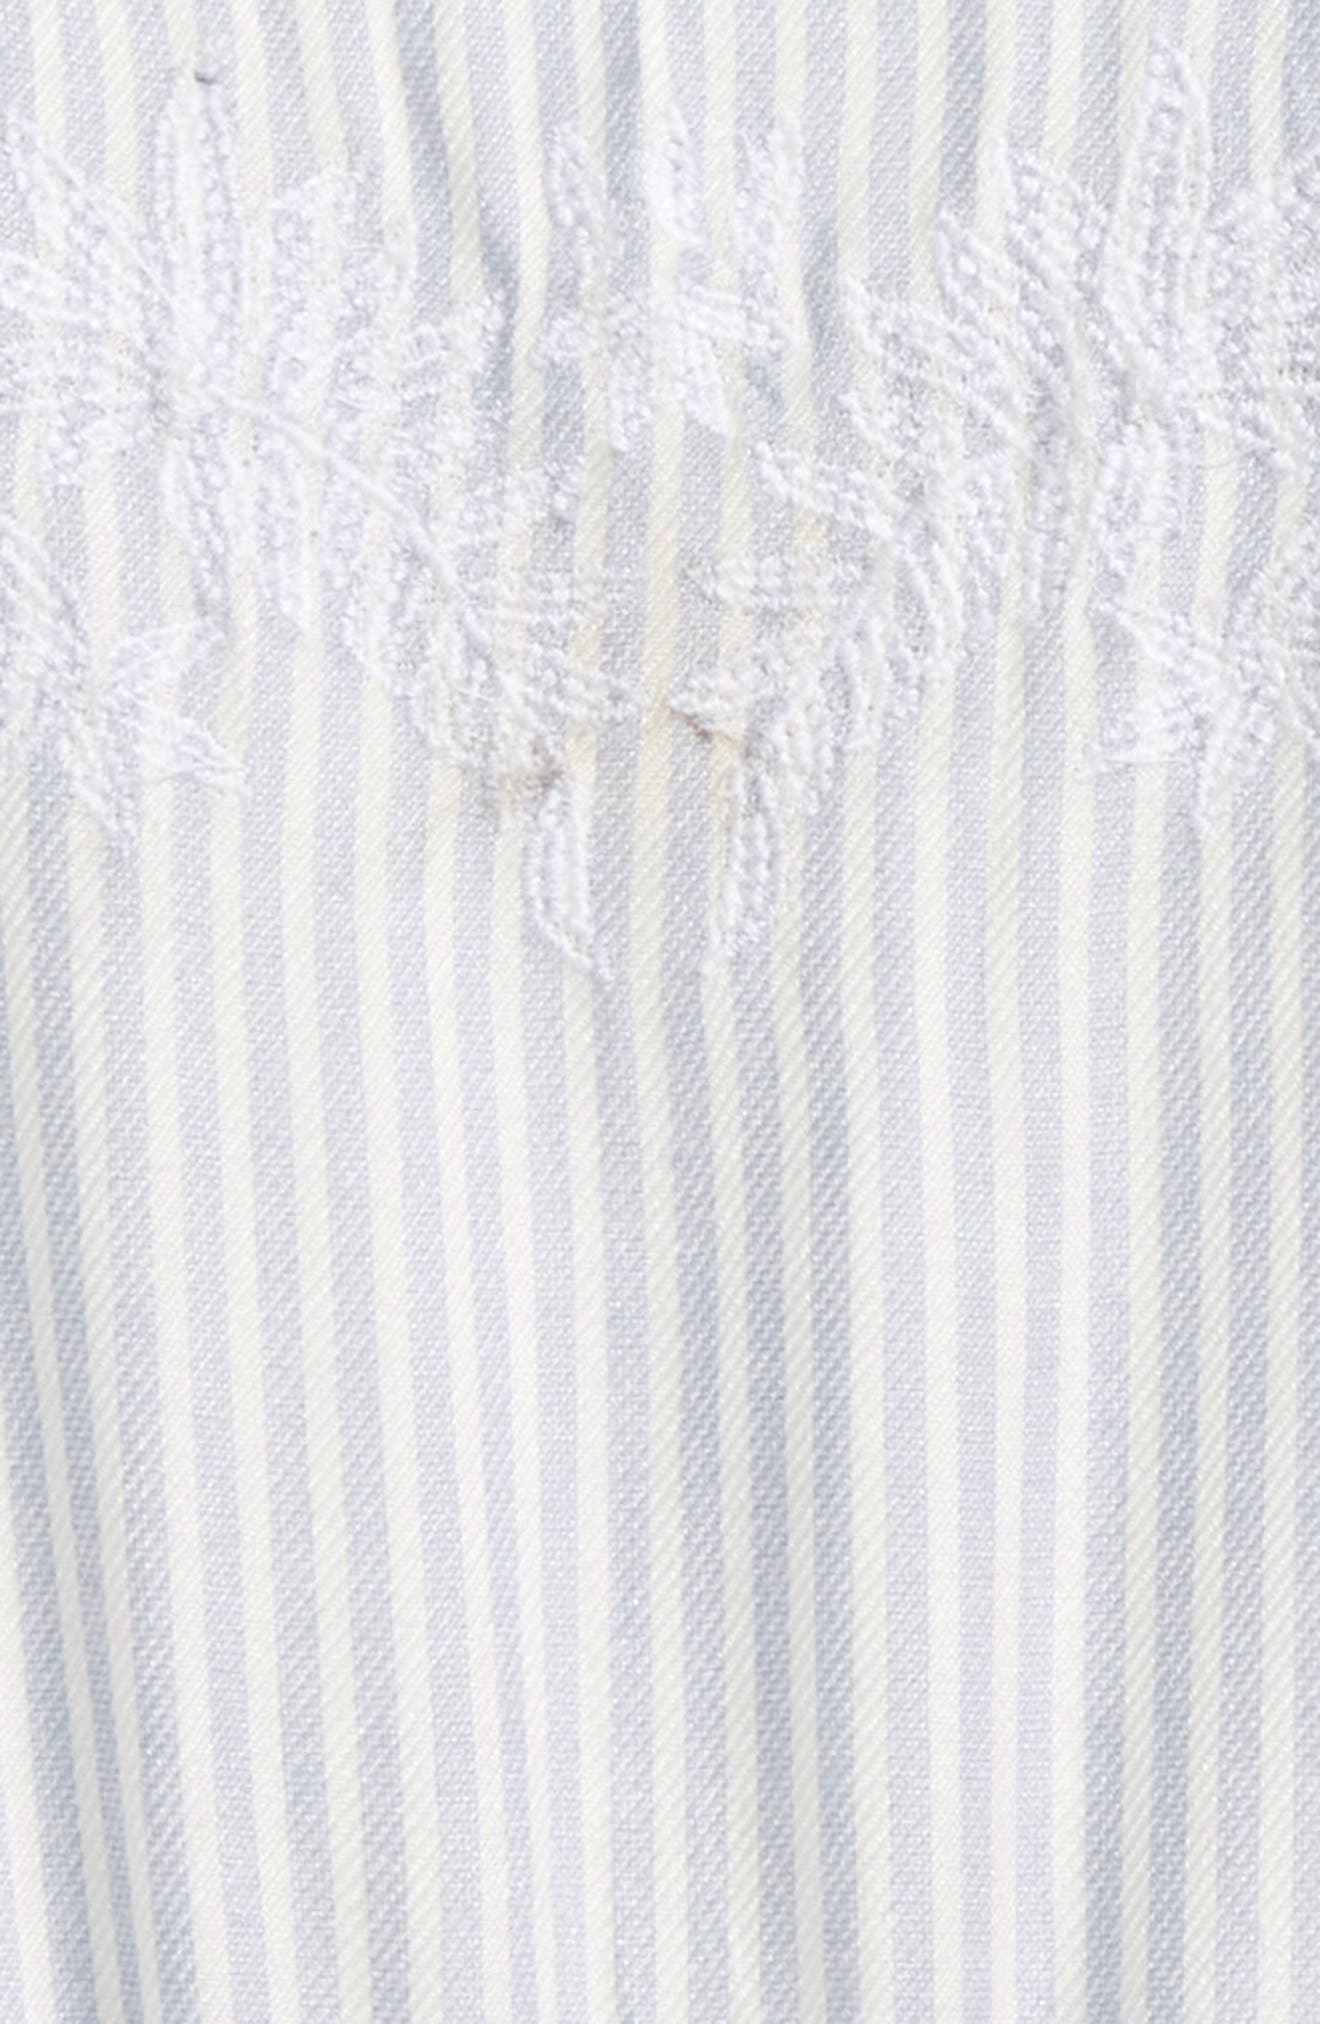 Lemonade Stripe Romper,                             Alternate thumbnail 3, color,                             Bleached Periwinkle